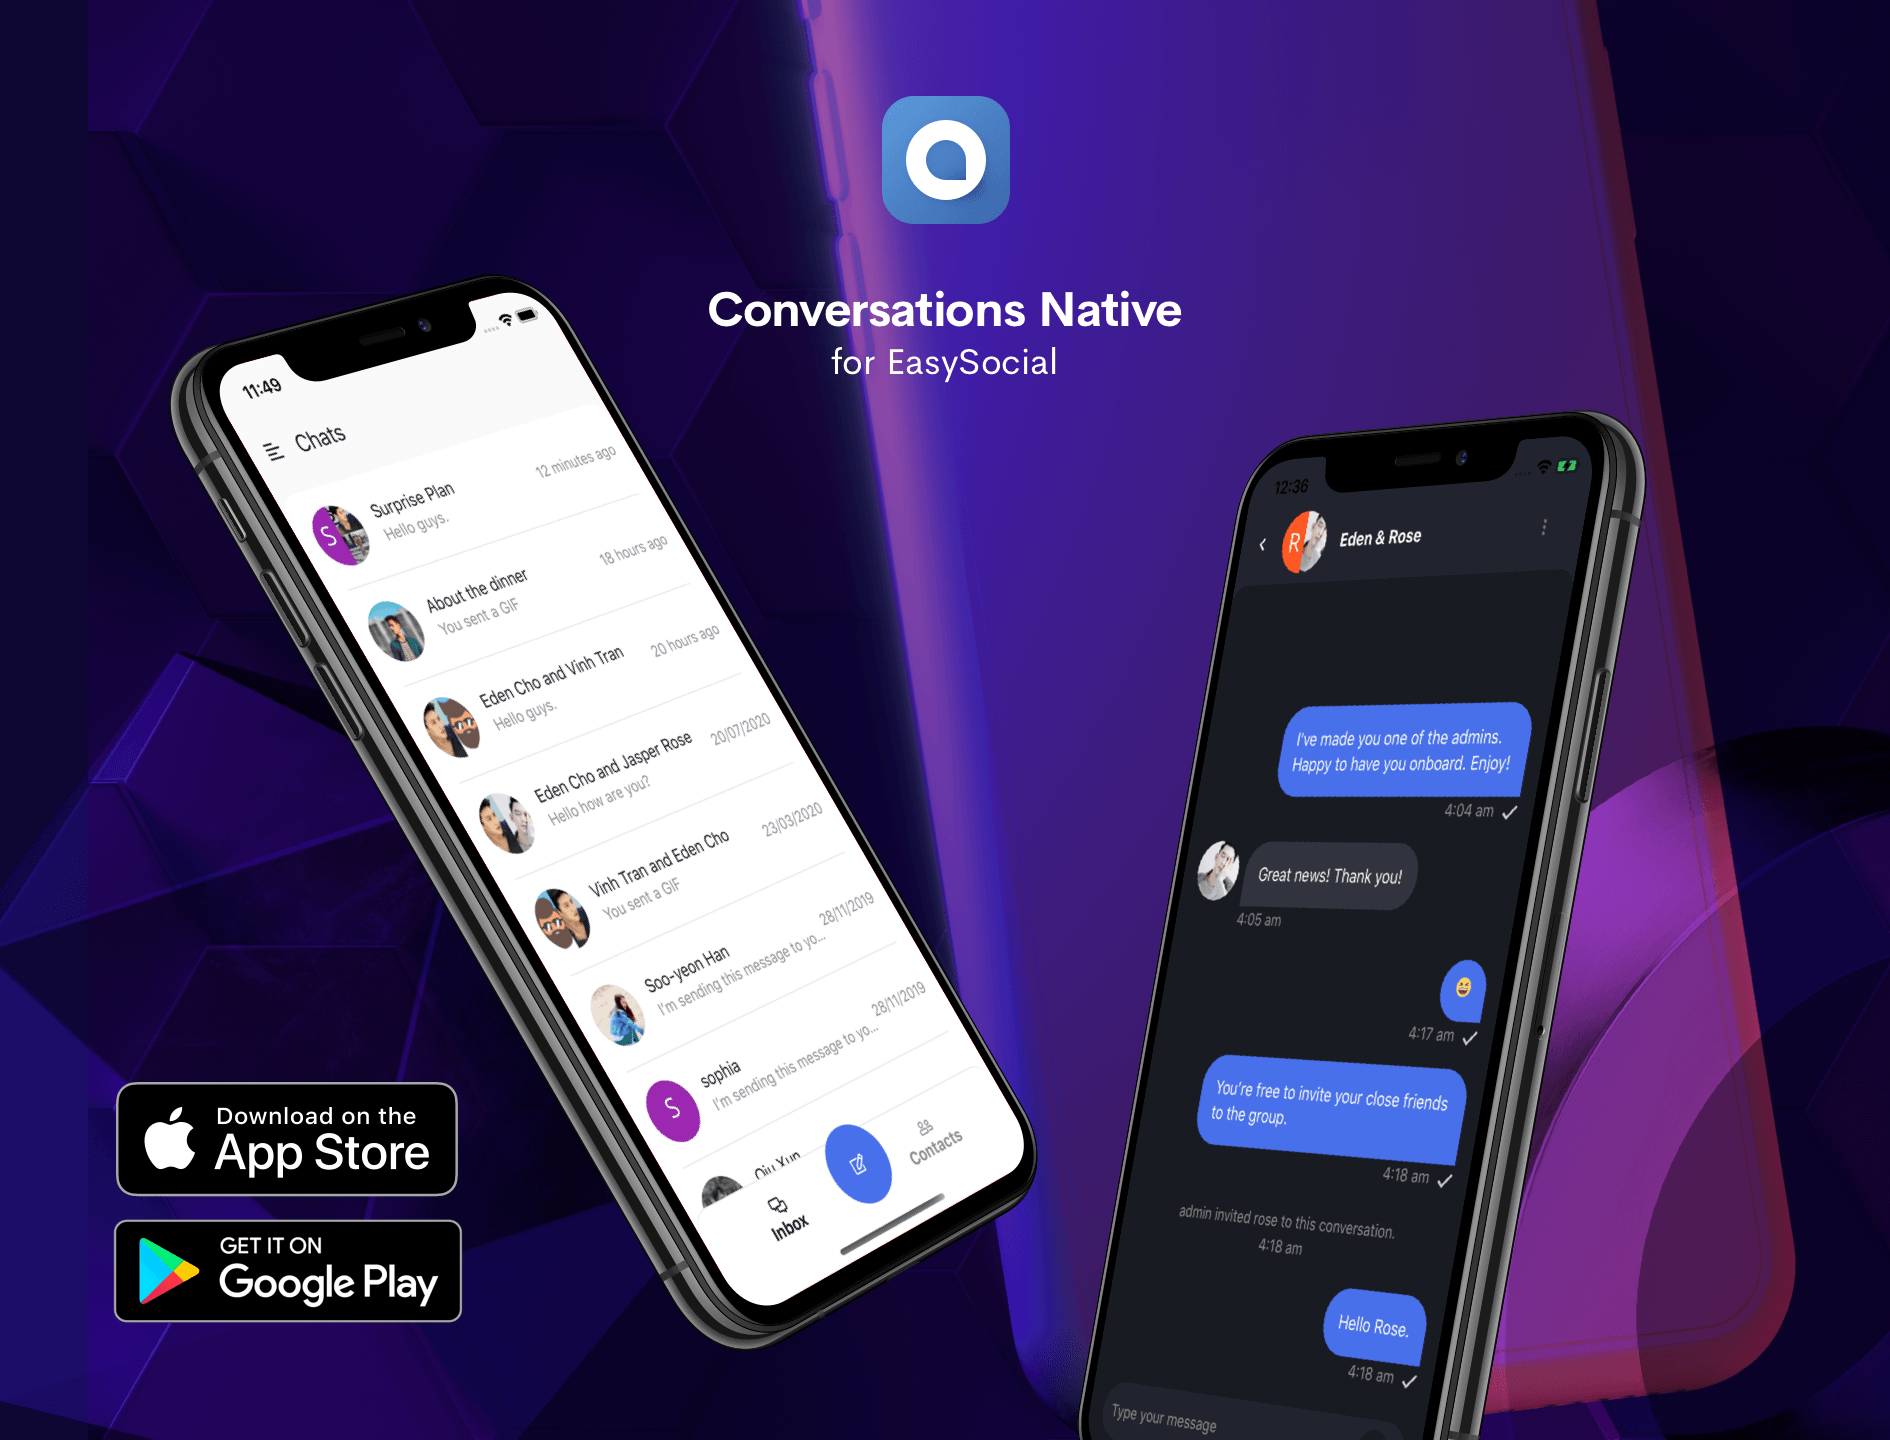 Conversations Native App v1.2 Available Now